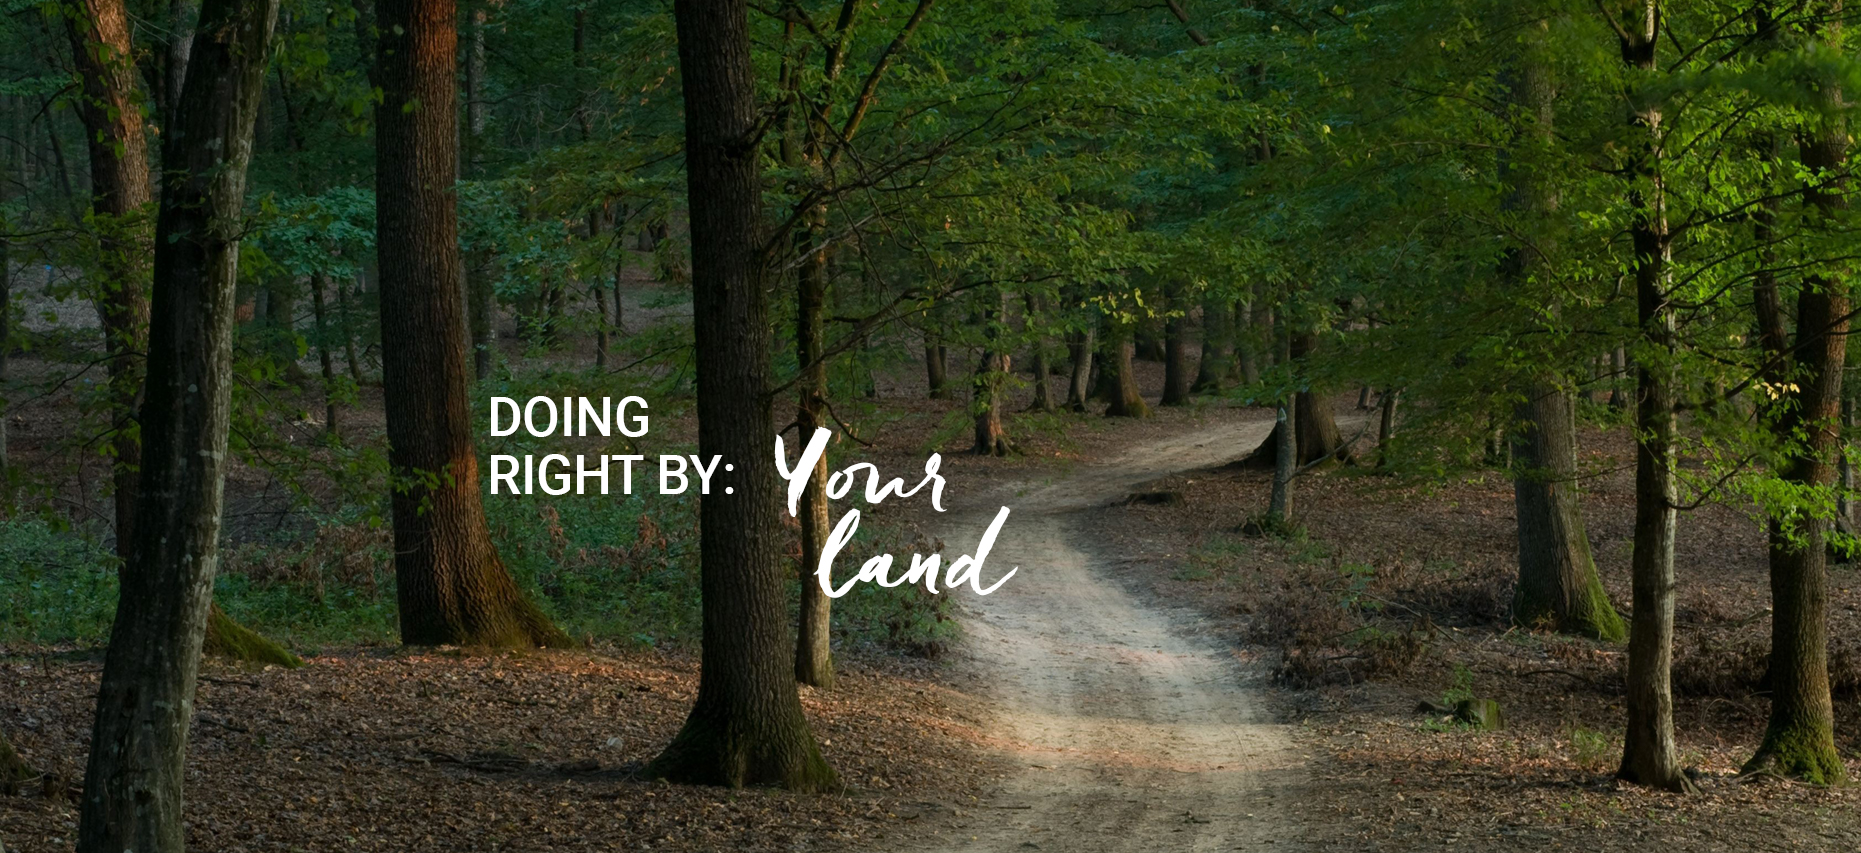 Doing Right By: Your Land Homepage slide